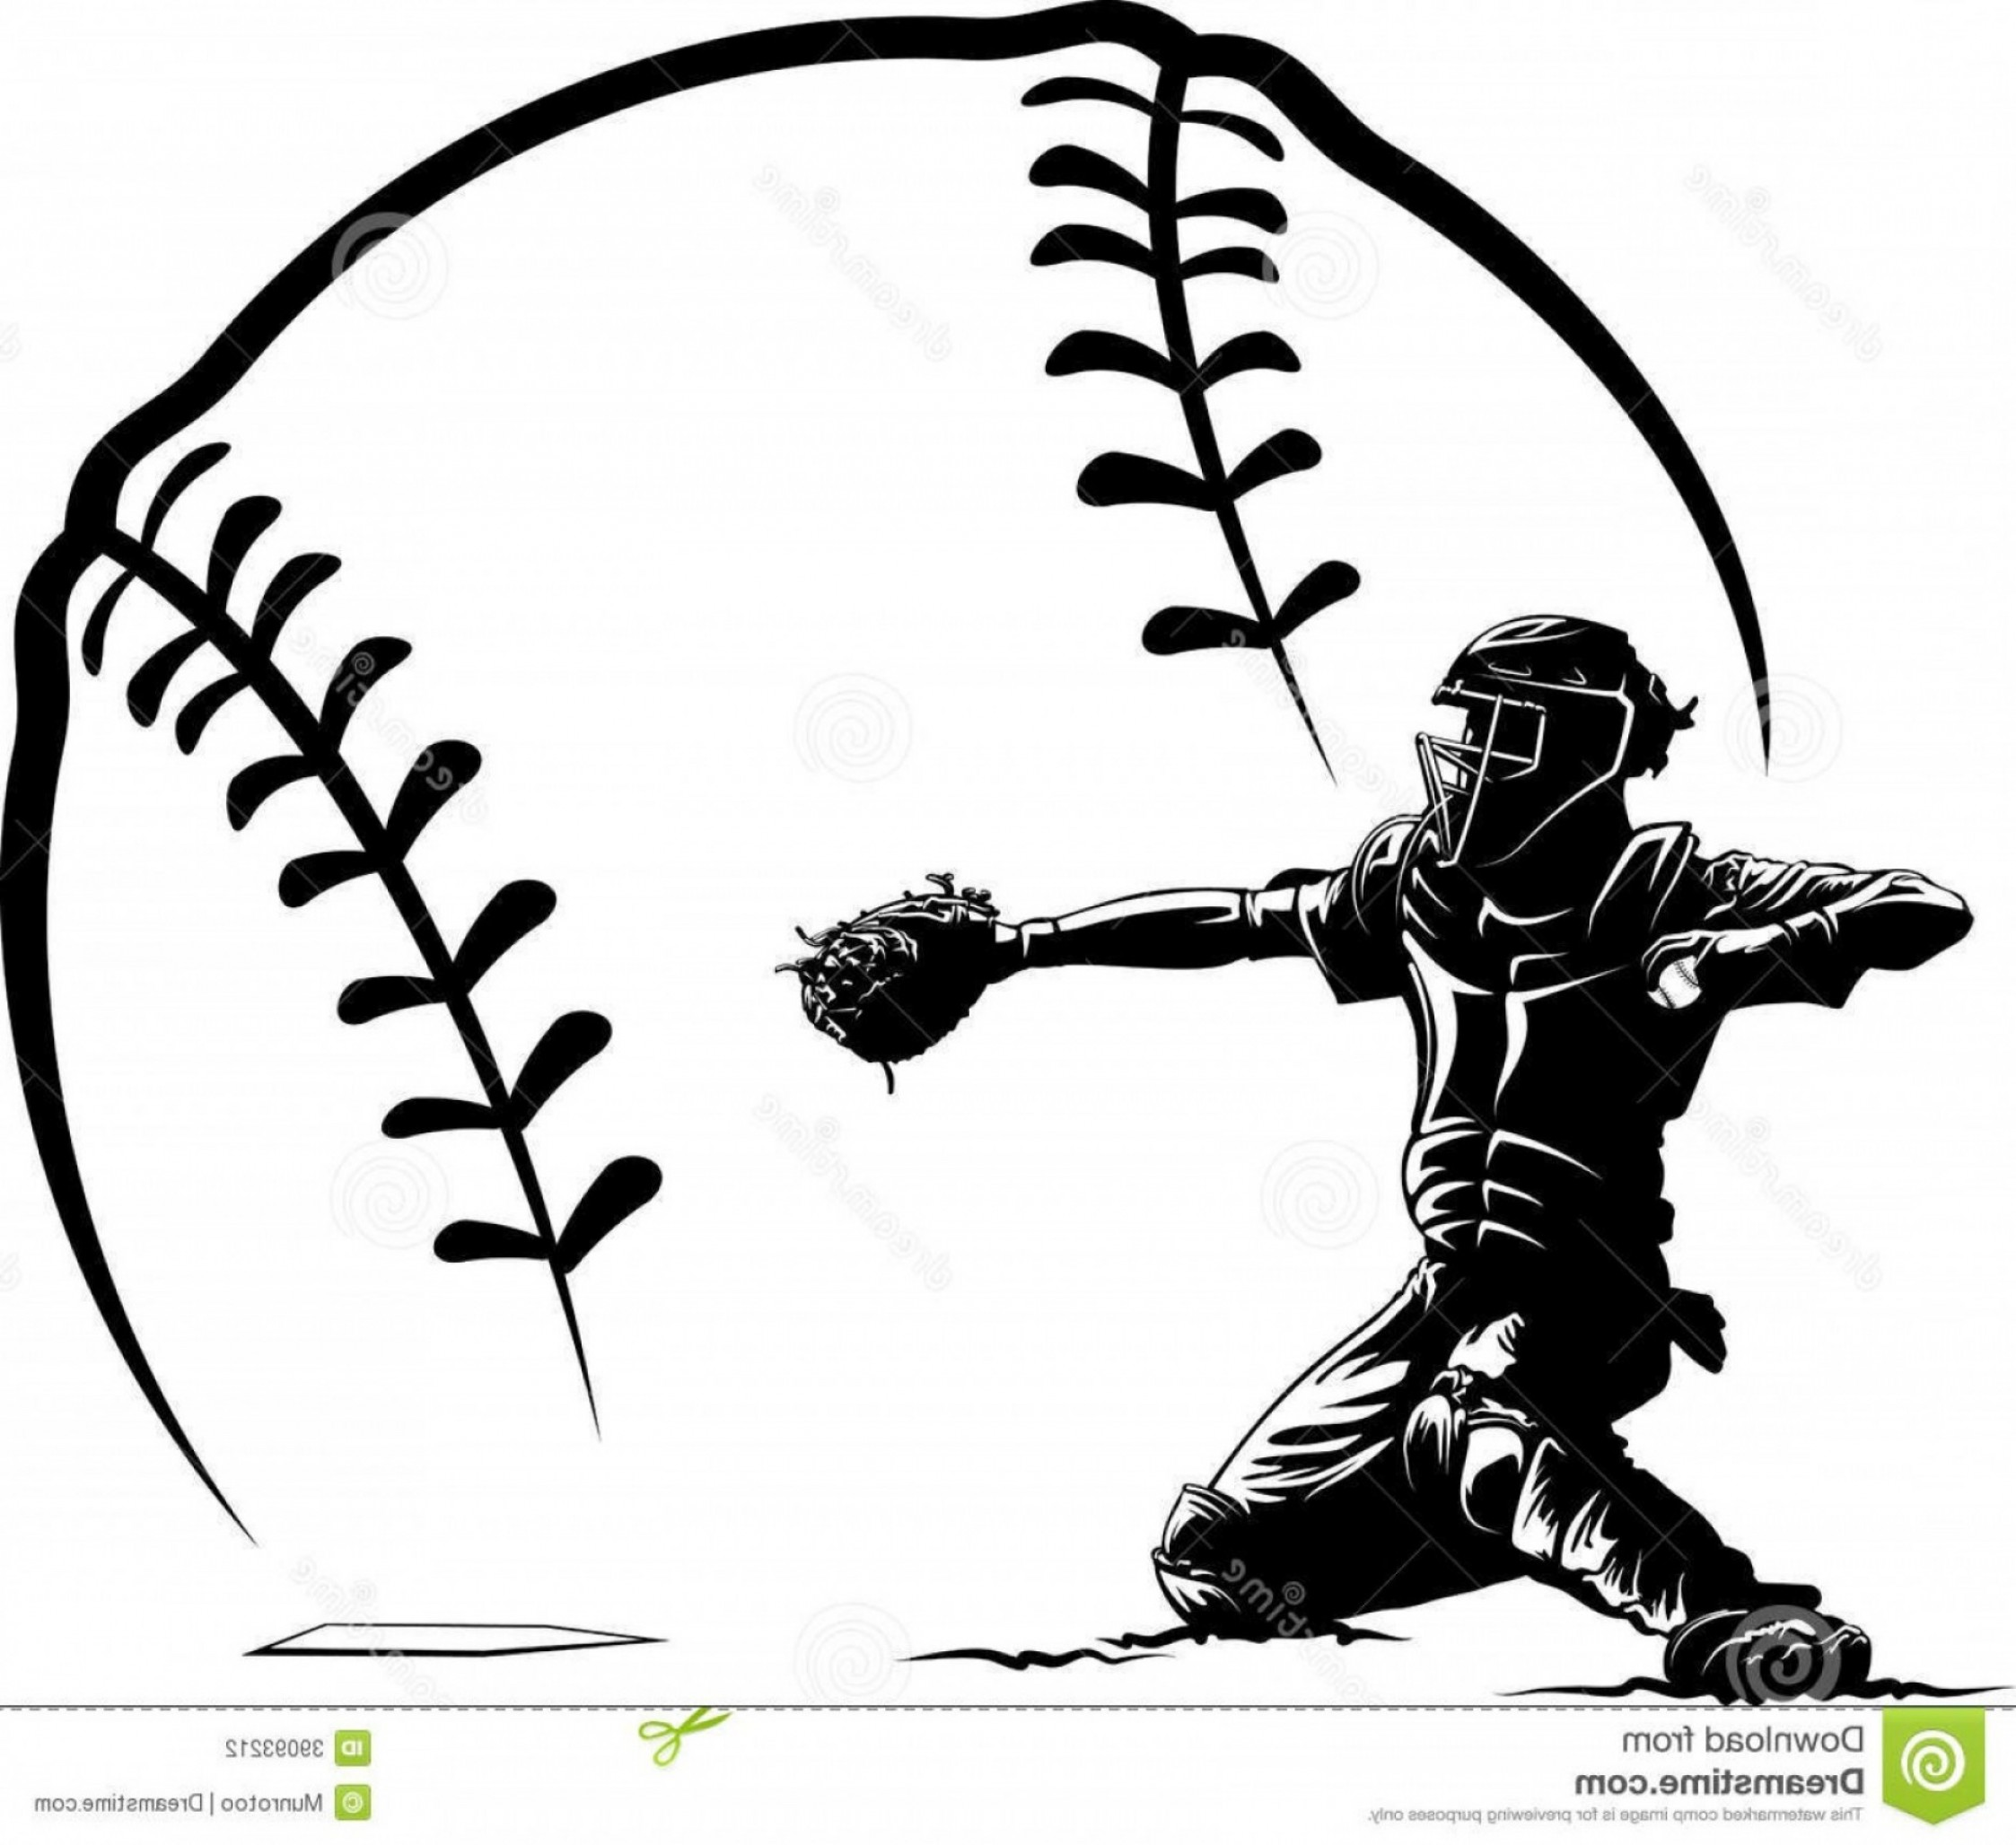 2246x2056 Best Baseball Catcher Vector Image Collection